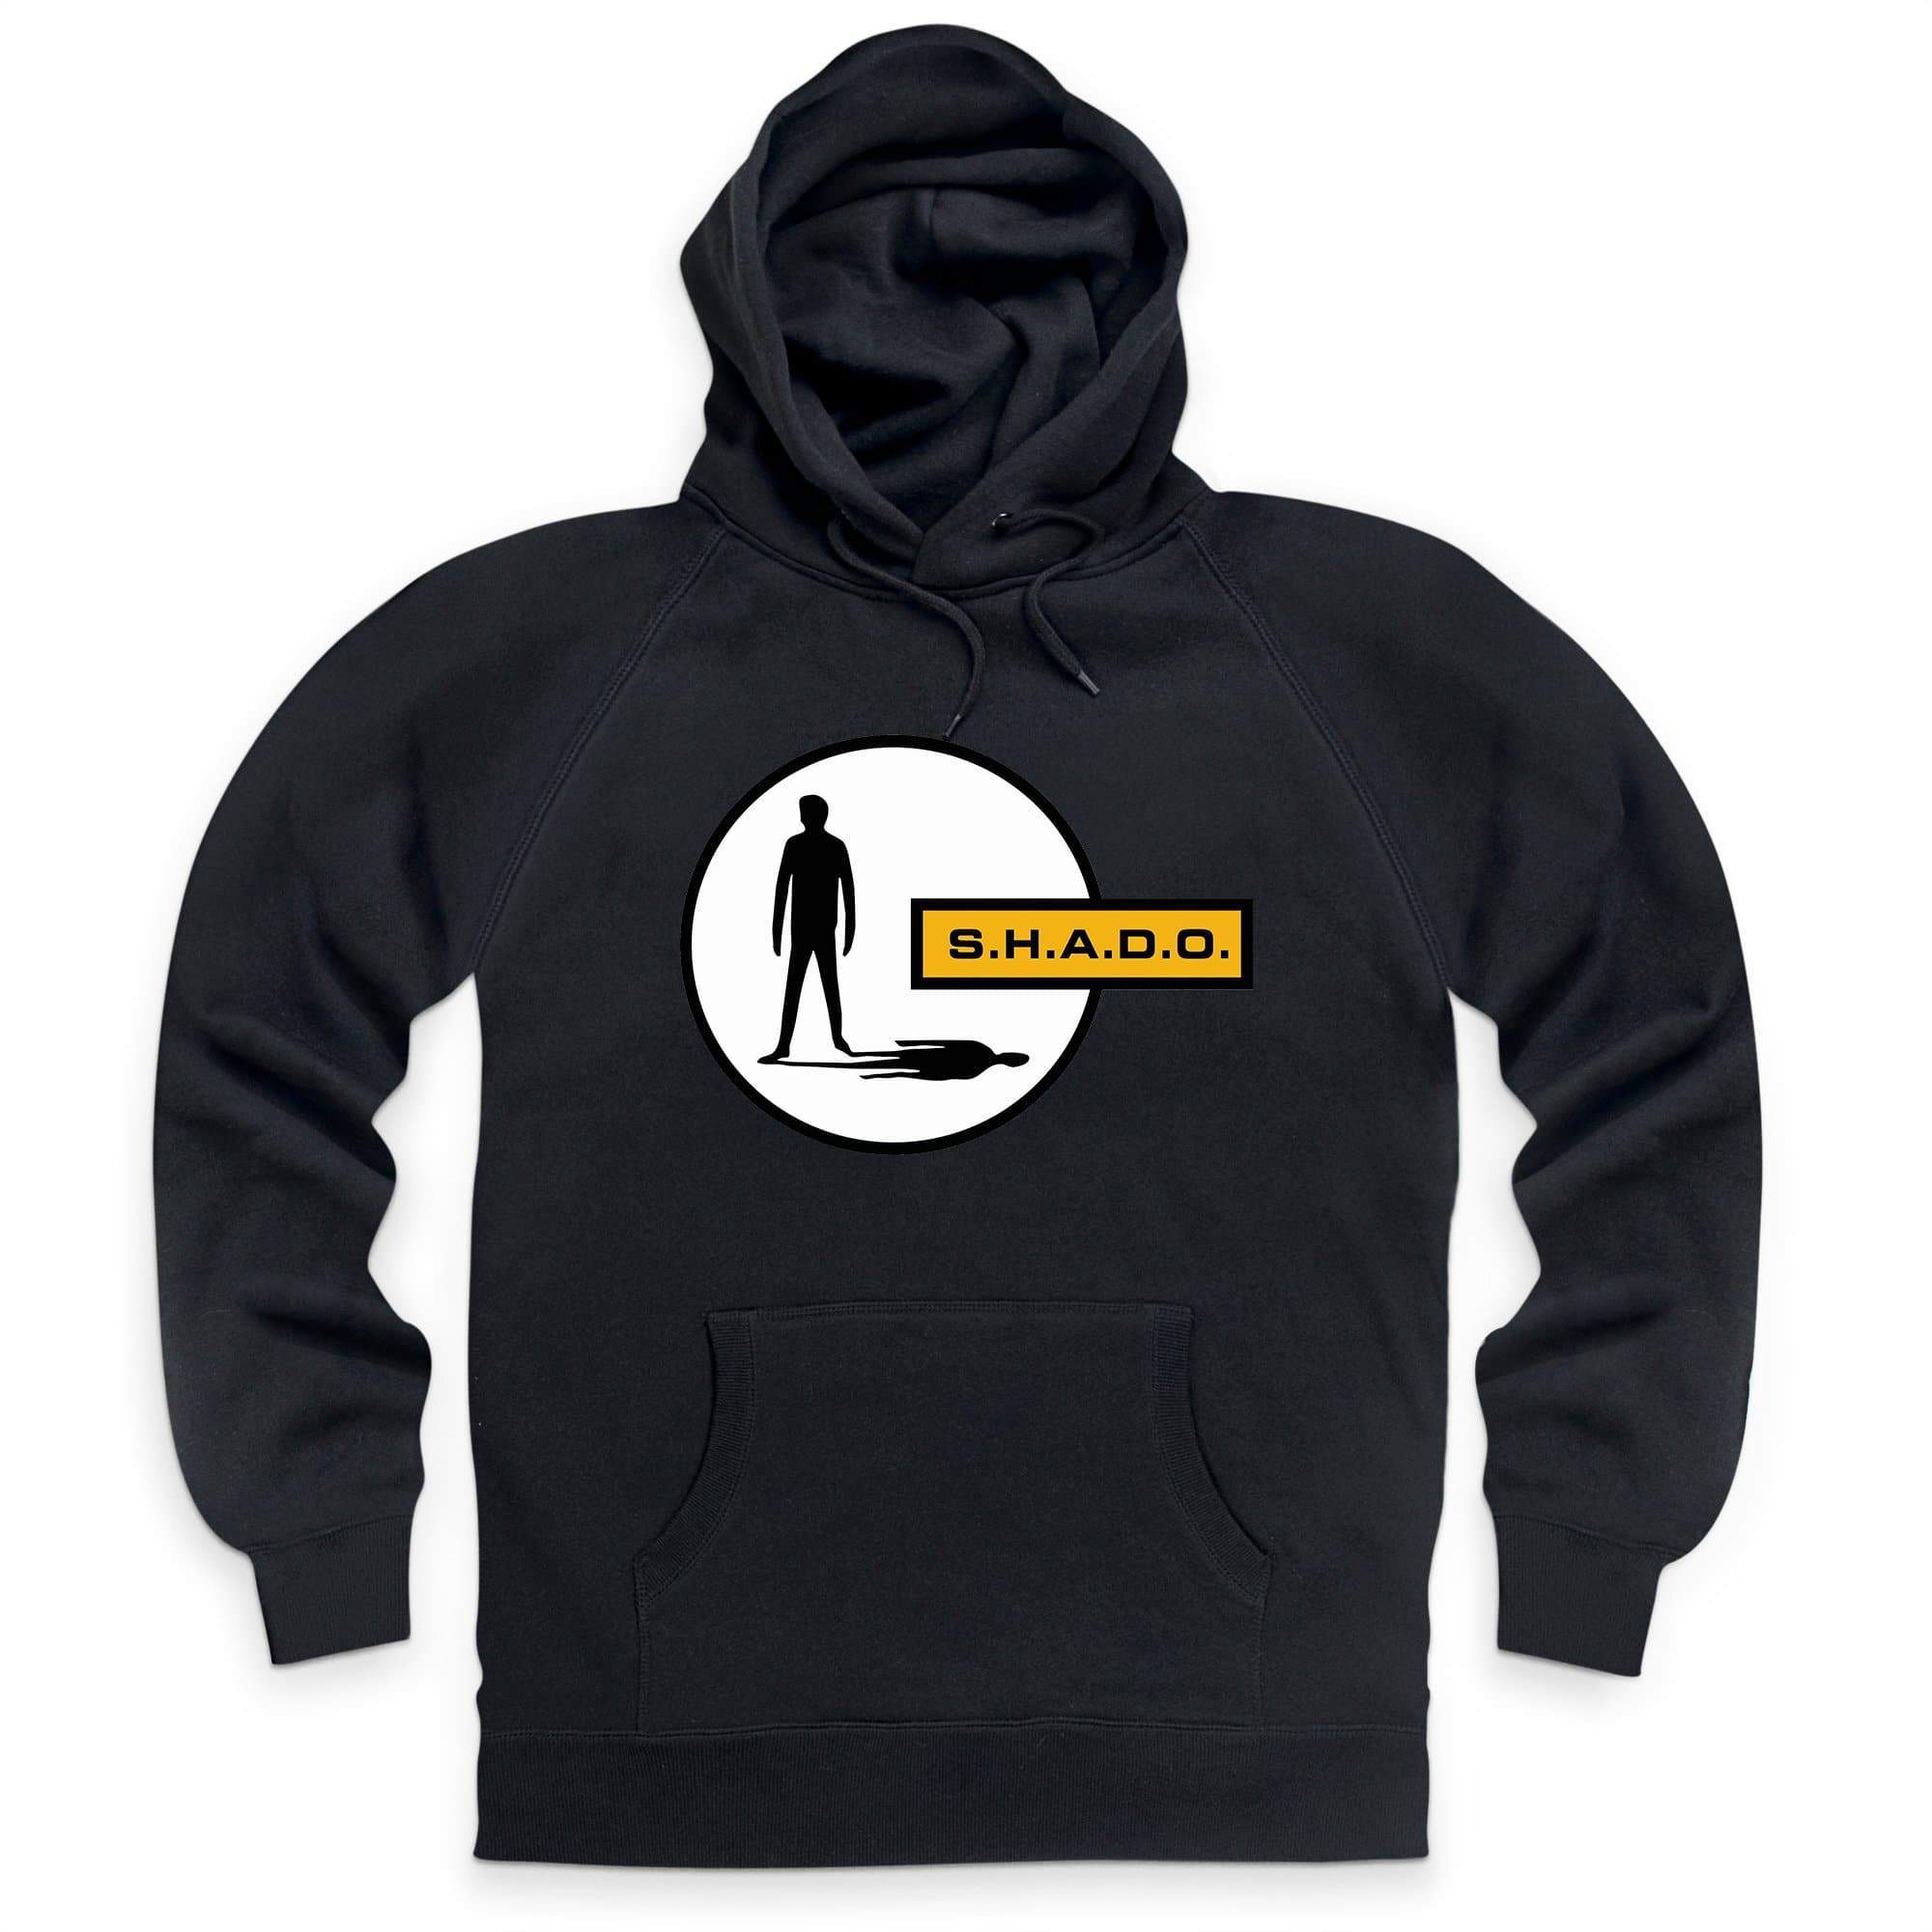 UFO/SHADO Logo Hoodie [Official & Exclusive] - The Gerry Anderson Store